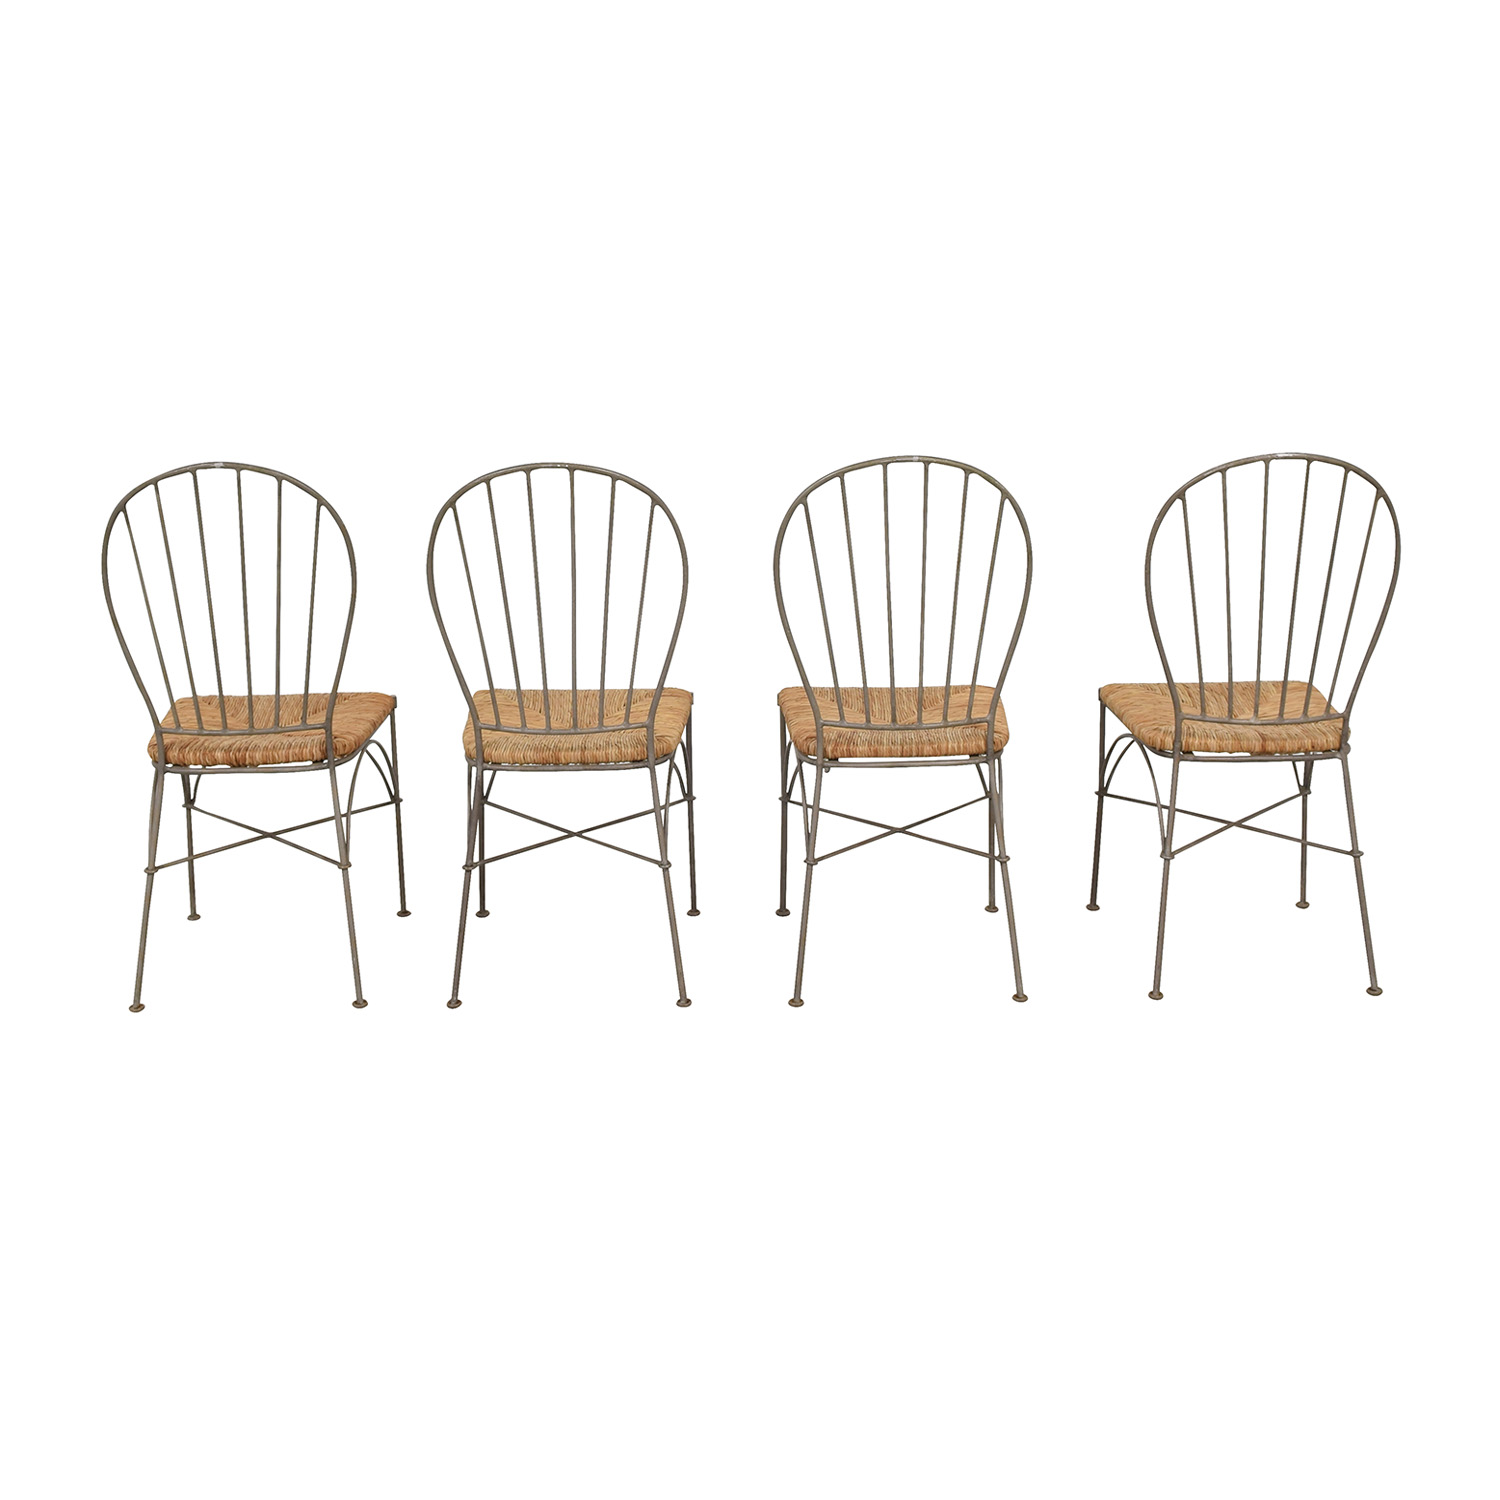 Pier 1 Pier 1 Woven Seat Dining Chairs Chairs